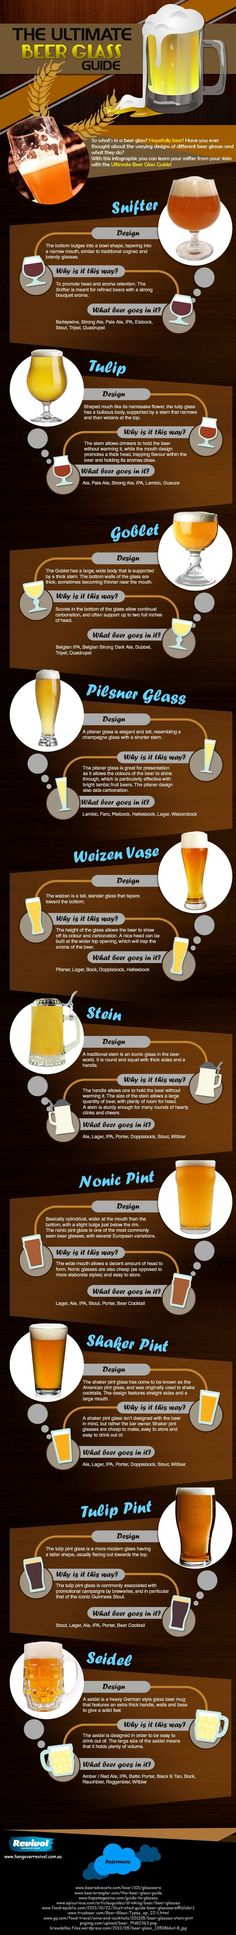 So what& in a beer glass? Have you ever thought about the varying designs of different beer glasses and what they do? With this infographic you can learn your snifter from your stein with the ultimate beer glass guide! More Beer, All Beer, Wine And Beer, Best Beer, Beer Brewing, Home Brewing, Beer Infographic, Beer Glassware, Beer Pairing